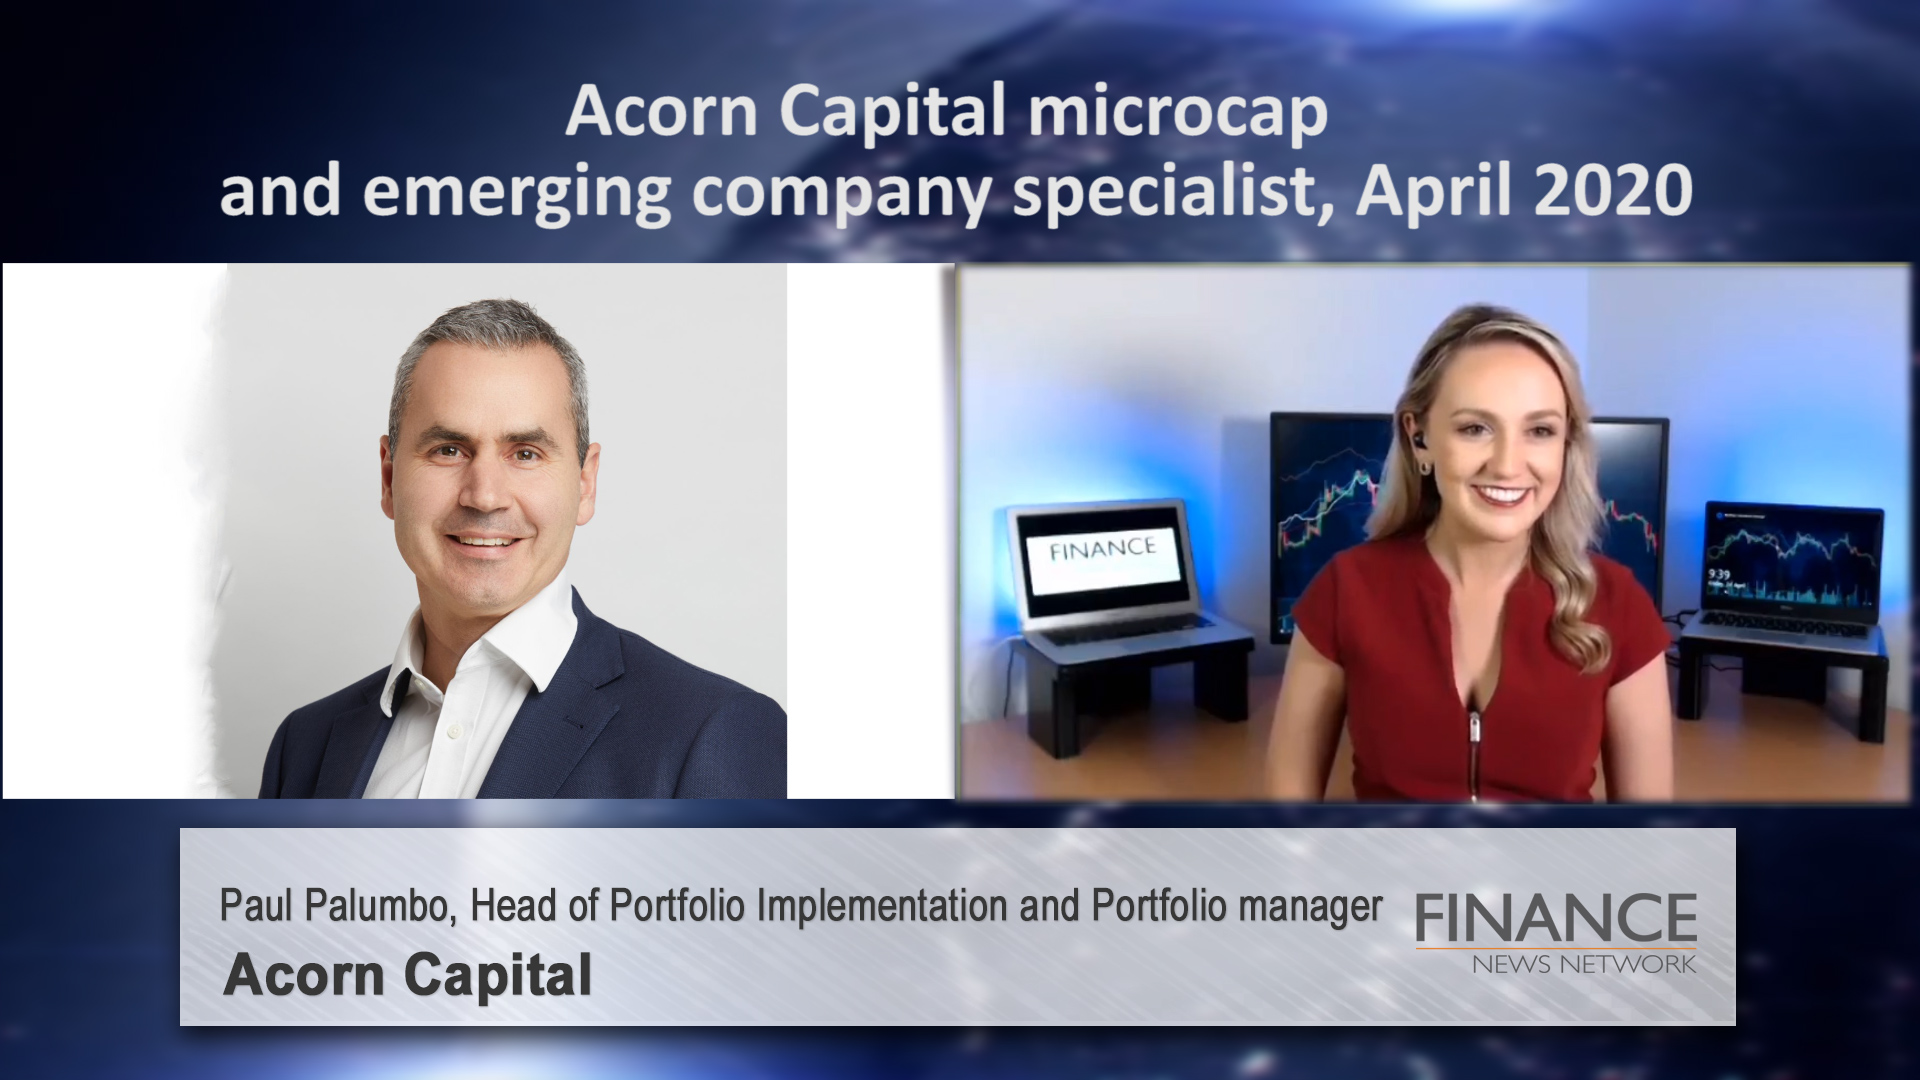 Acorn Capital microcap and emerging company specialist